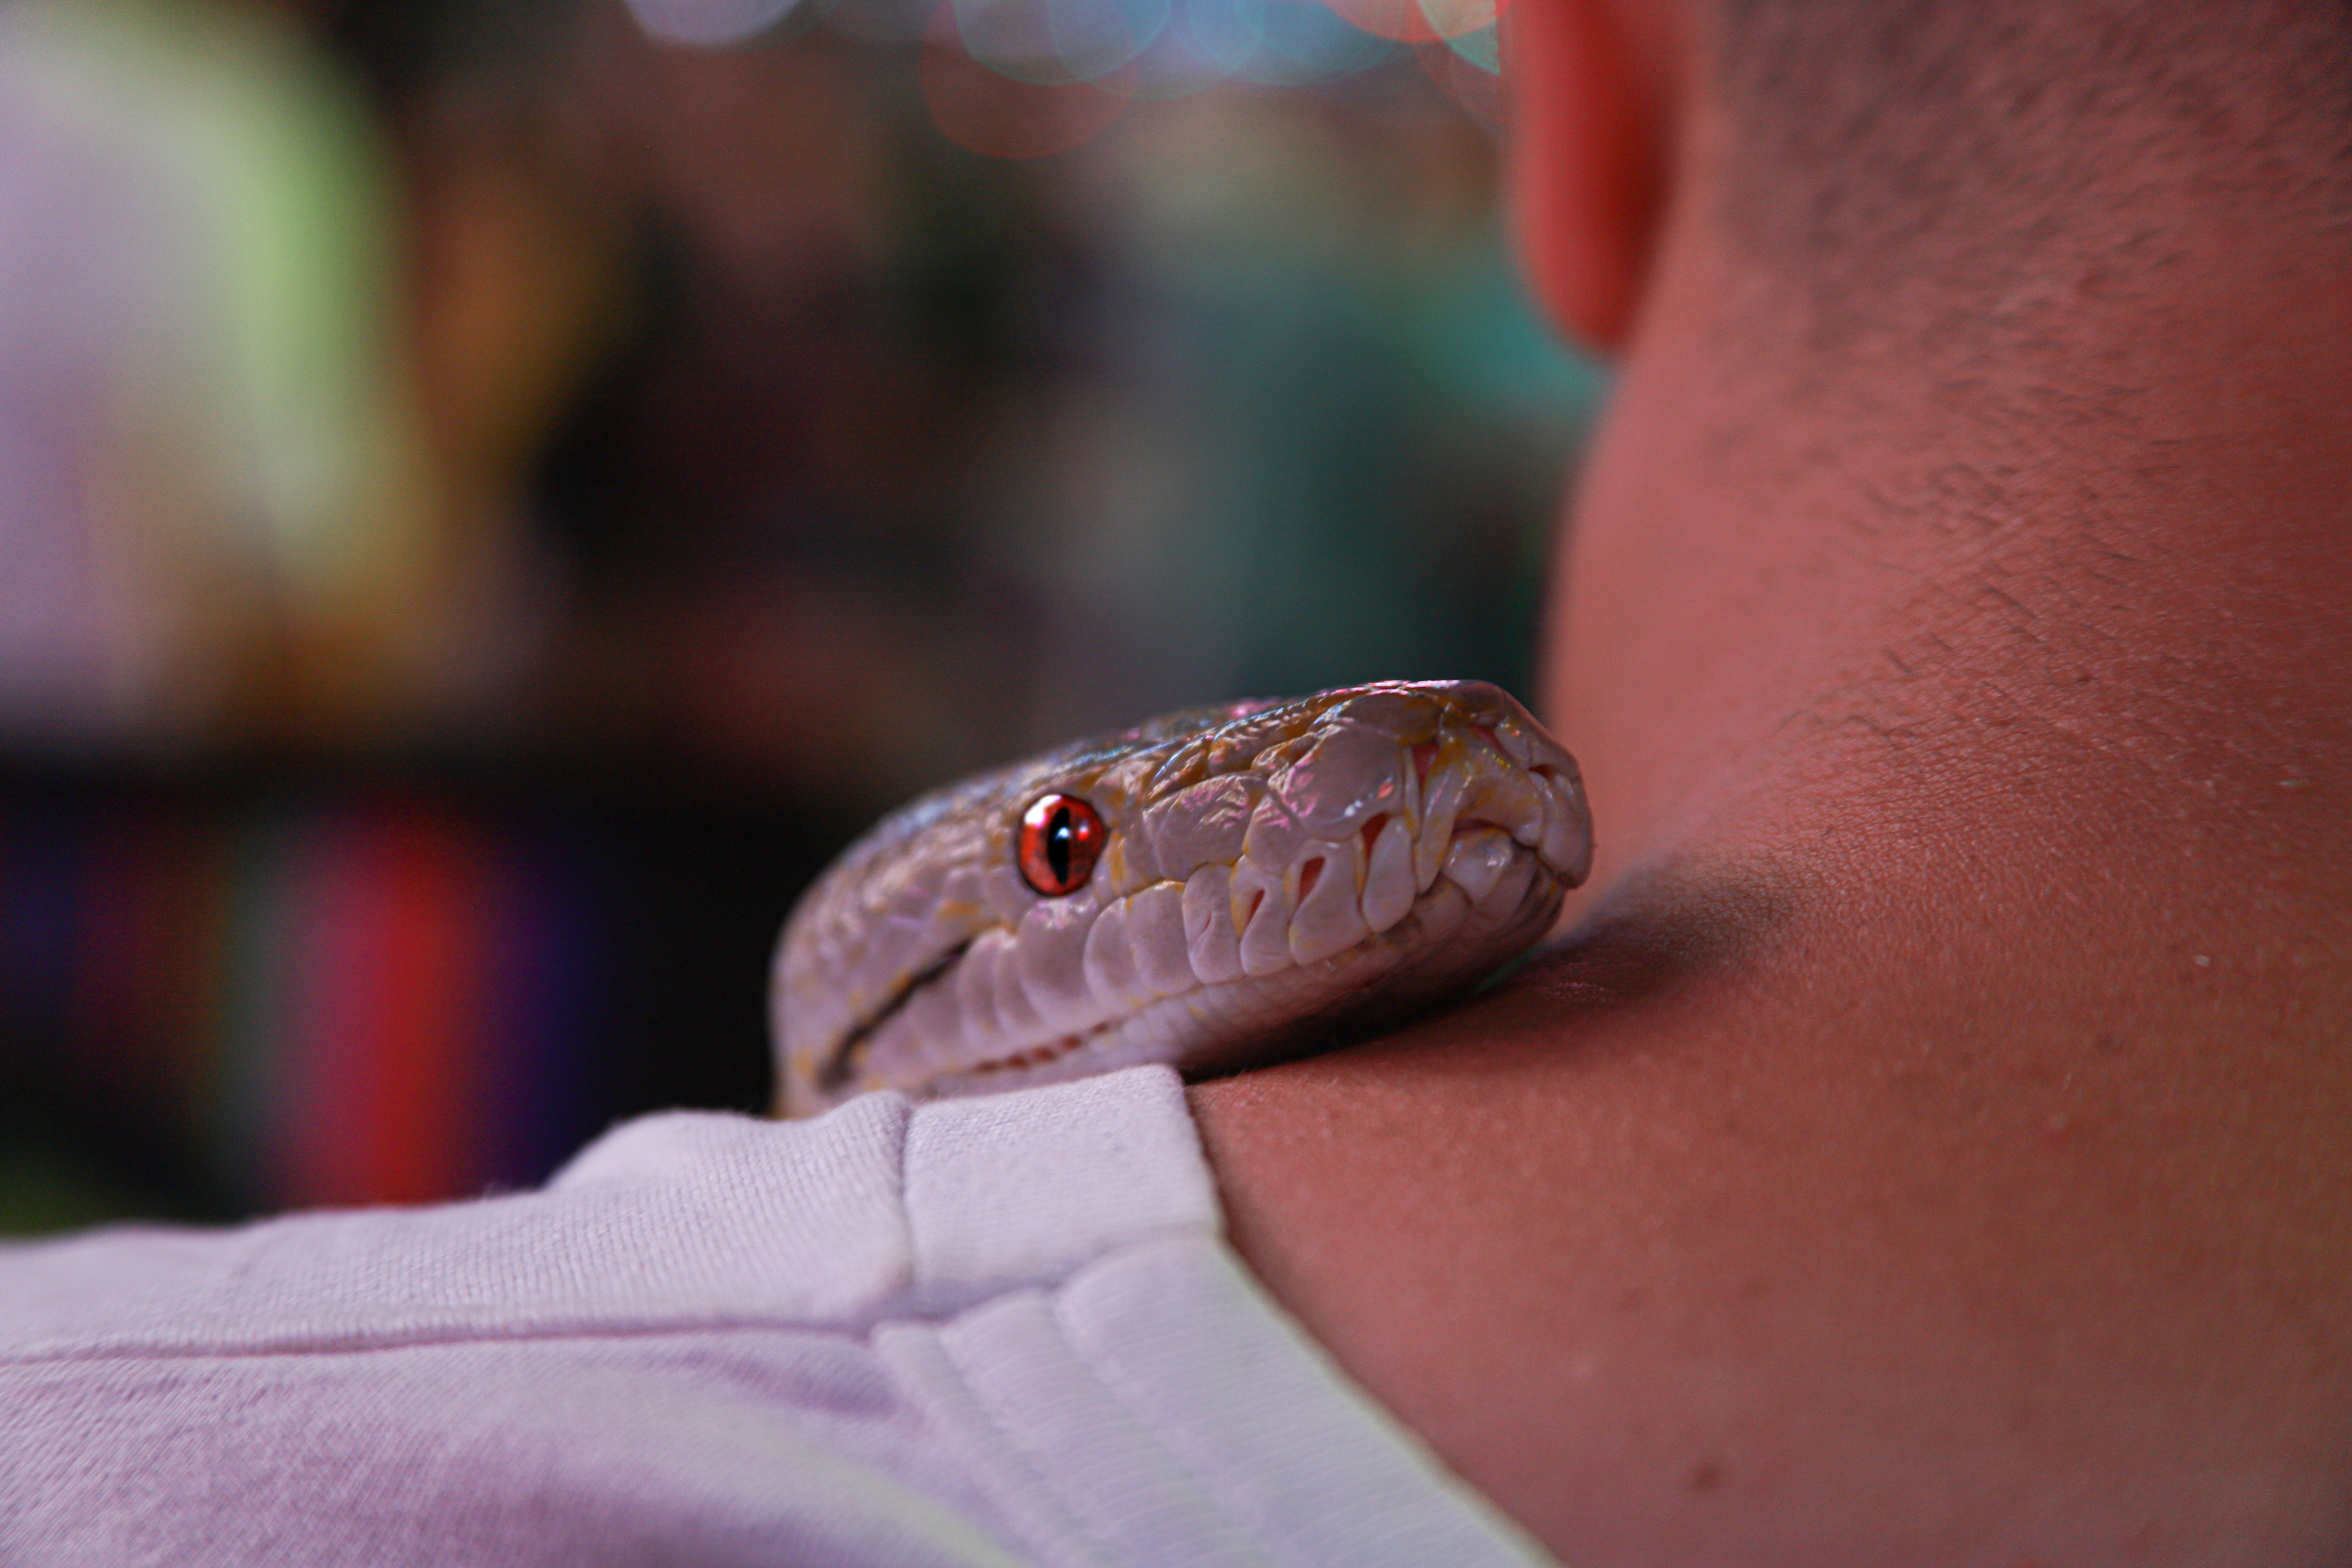 Gray Snake on Person's Neck